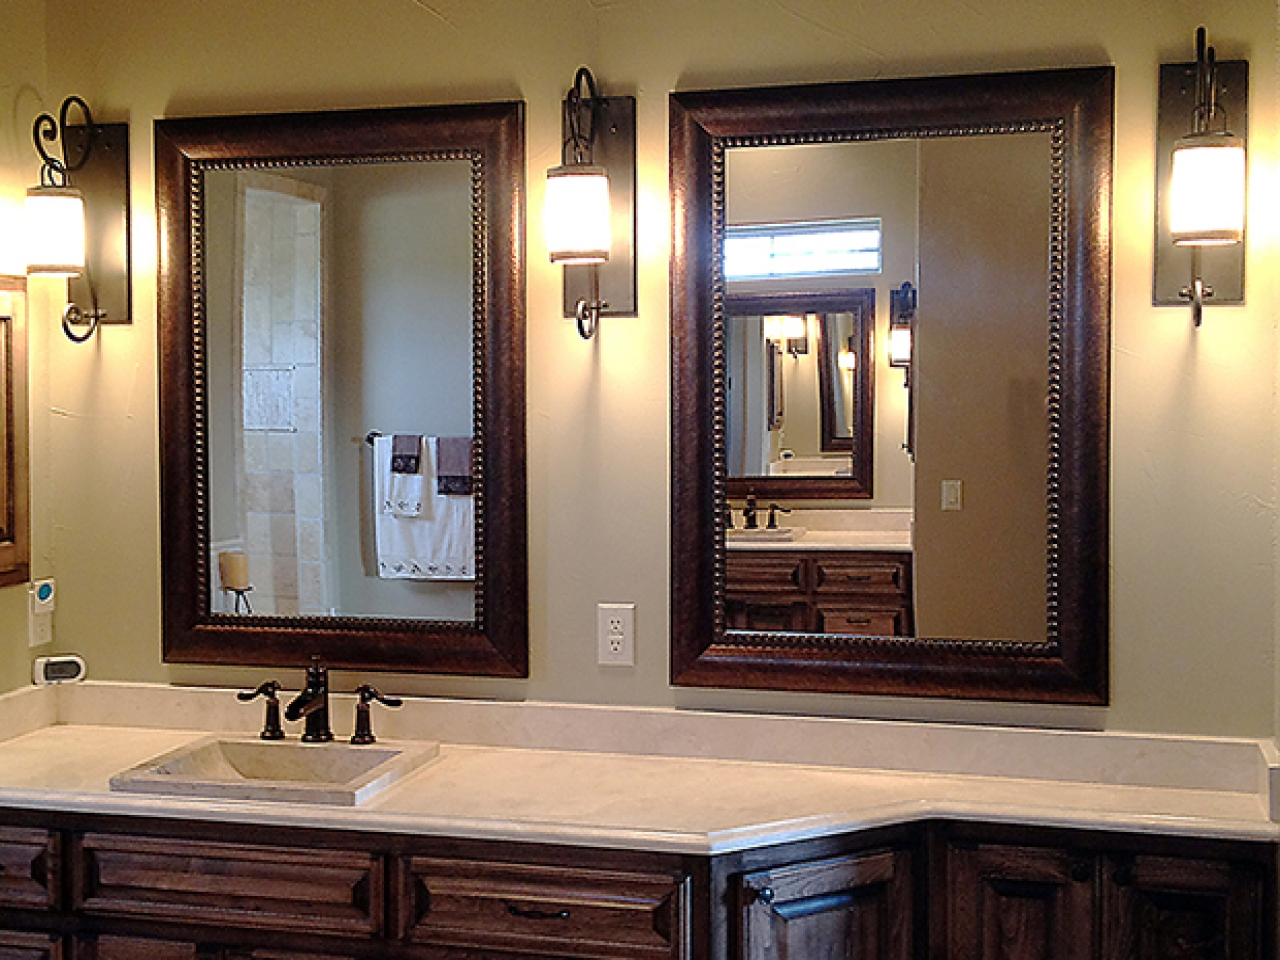 Framed Bathroom Mirrors Also Bathroom Vanity Mirror Also Wood Framed Bath Mirrors Framed Bathroom Mirrors 2 Or 1 Inspiration Home Magazine